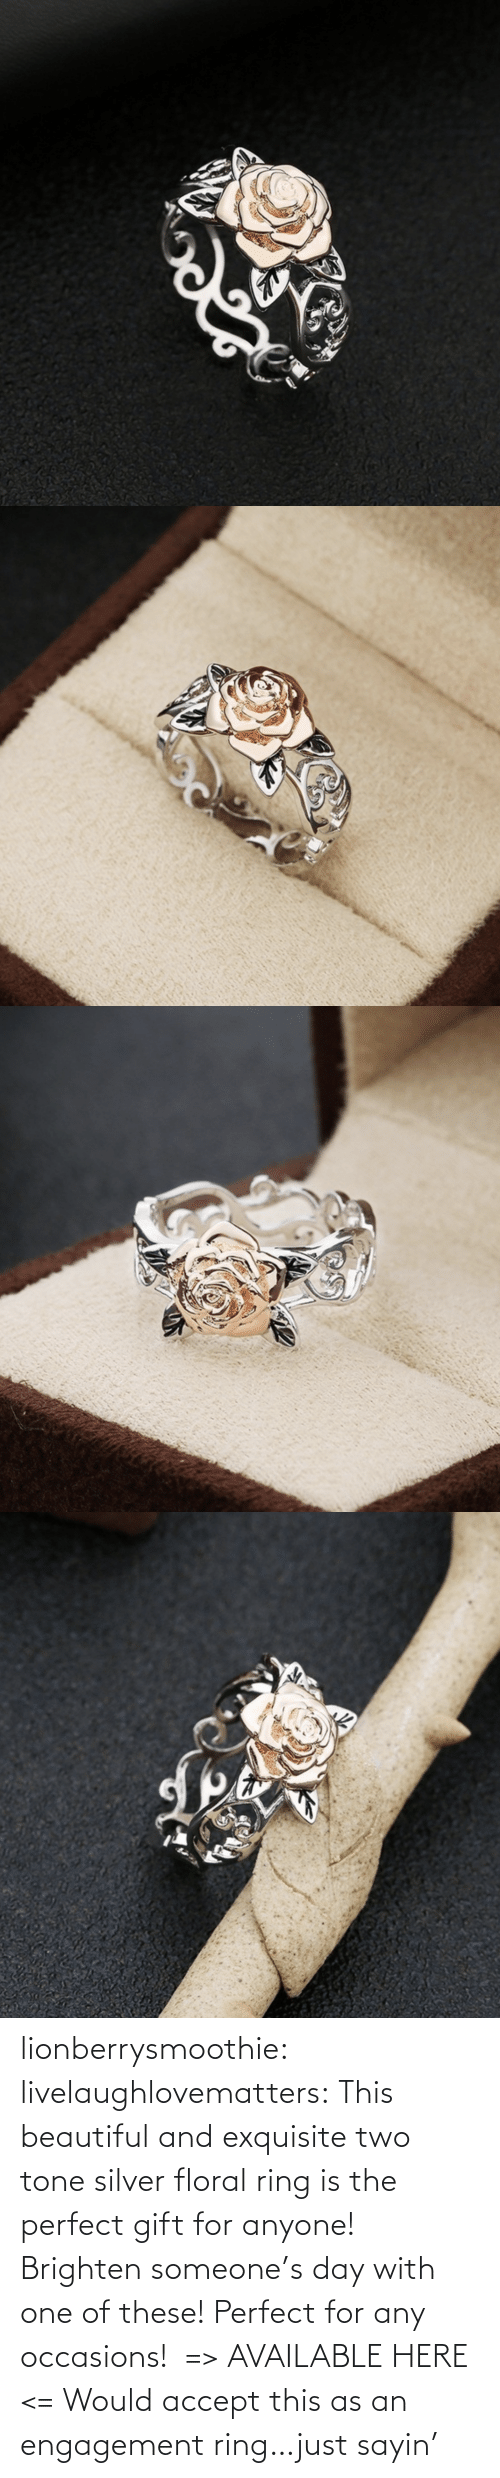 beautiful: lionberrysmoothie:  livelaughlovematters: This beautiful and exquisite two tone silver floral ring is the perfect gift for anyone! Brighten someone's day with one of these! Perfect for any occasions!  => AVAILABLE HERE <=    Would accept this as an engagement ring…just sayin'